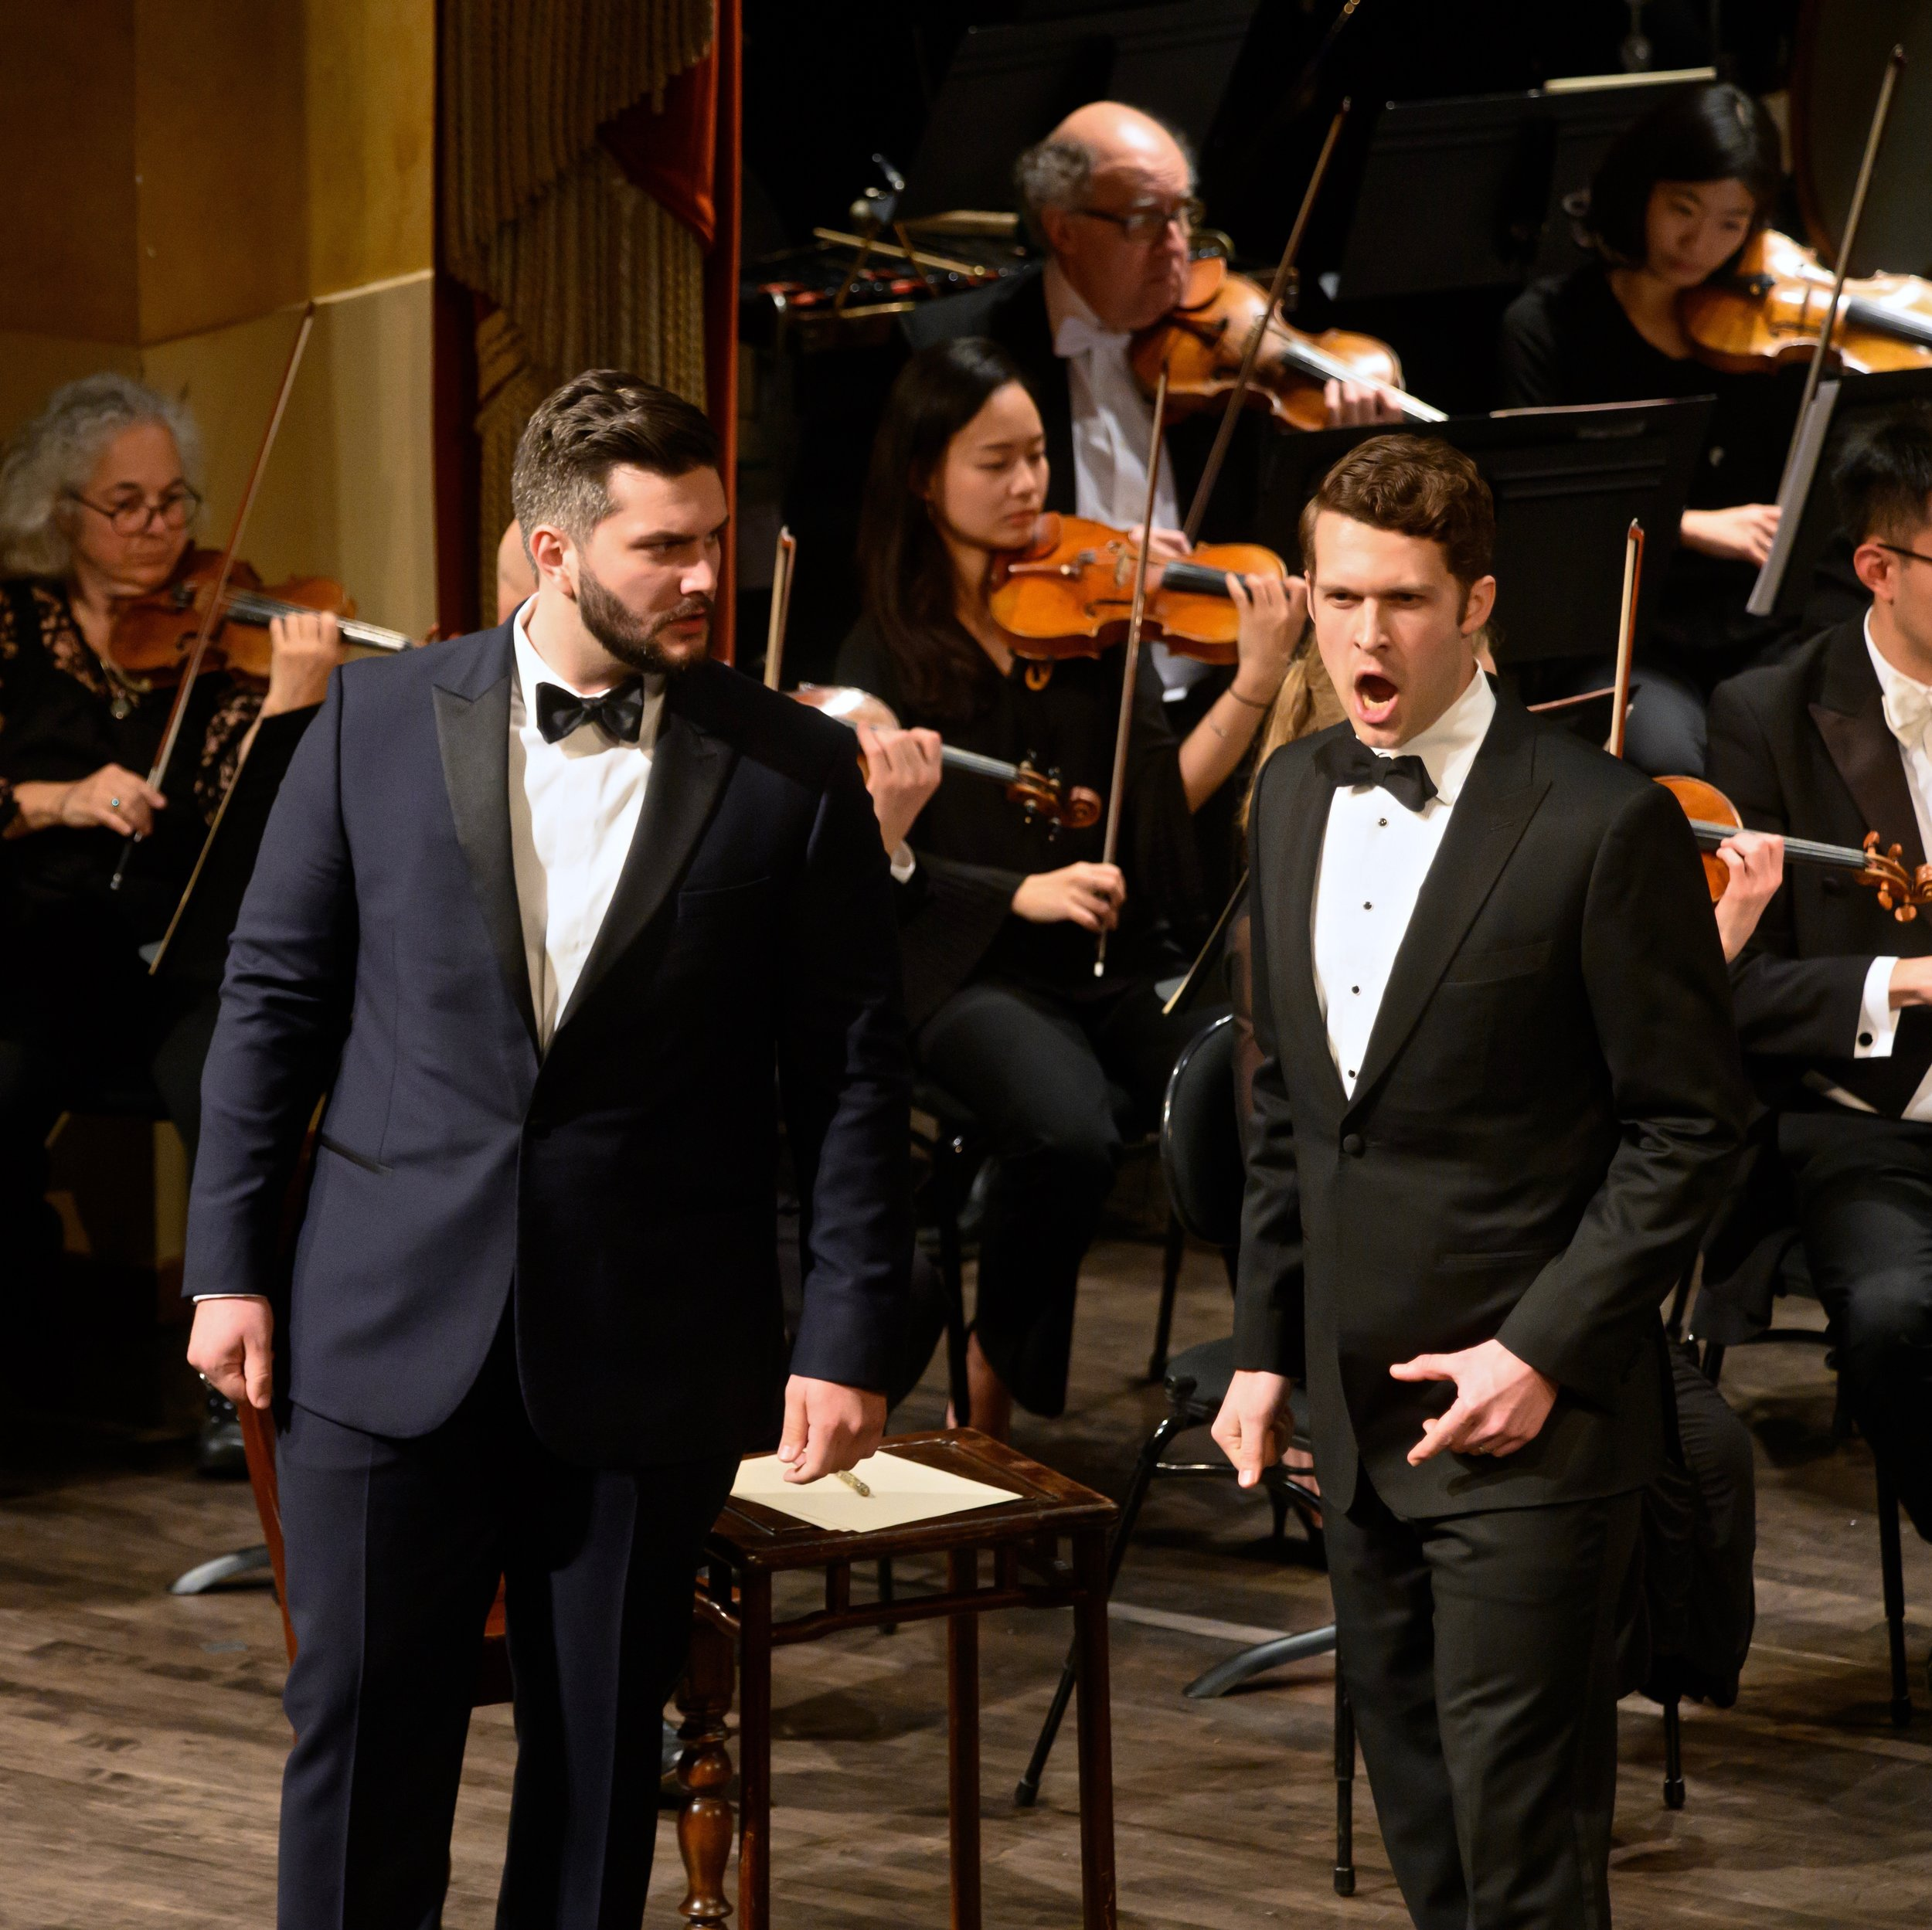 Adler Fellows Concert - San Francisco Opera © Kristen Loken